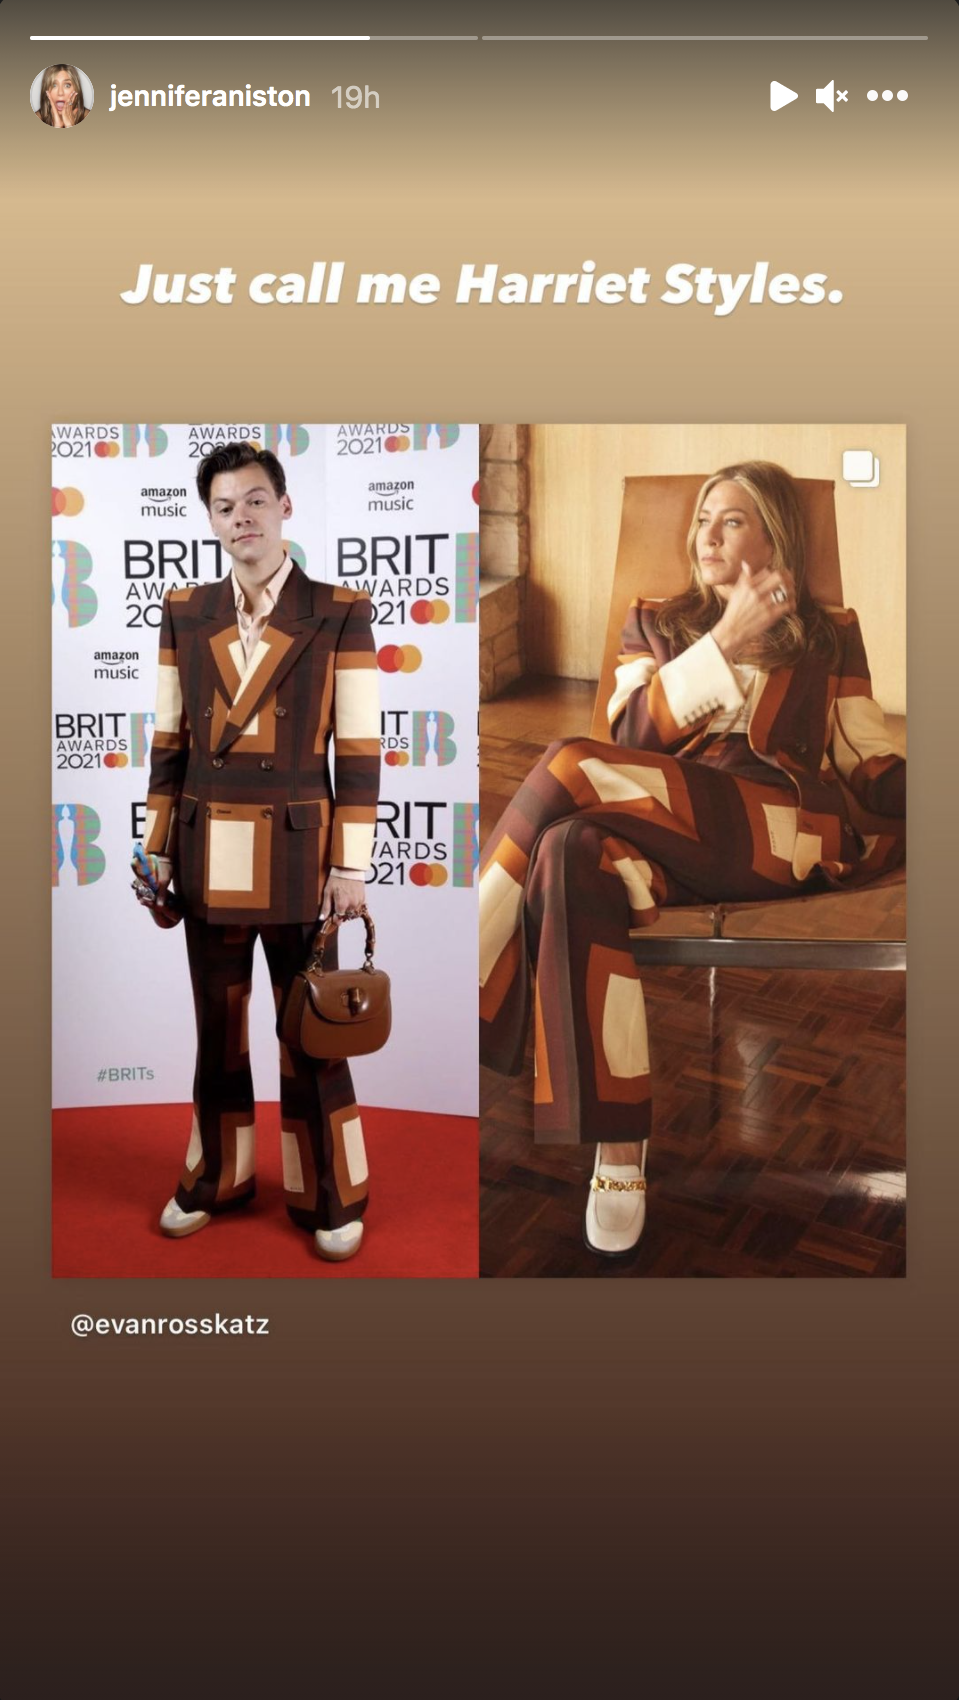 Photos of Harry Styles and Jennifer Aniston wearing the same pantsuit are pictured side by side in this screenshot from Jennifer Aniston's latest Instagram Story